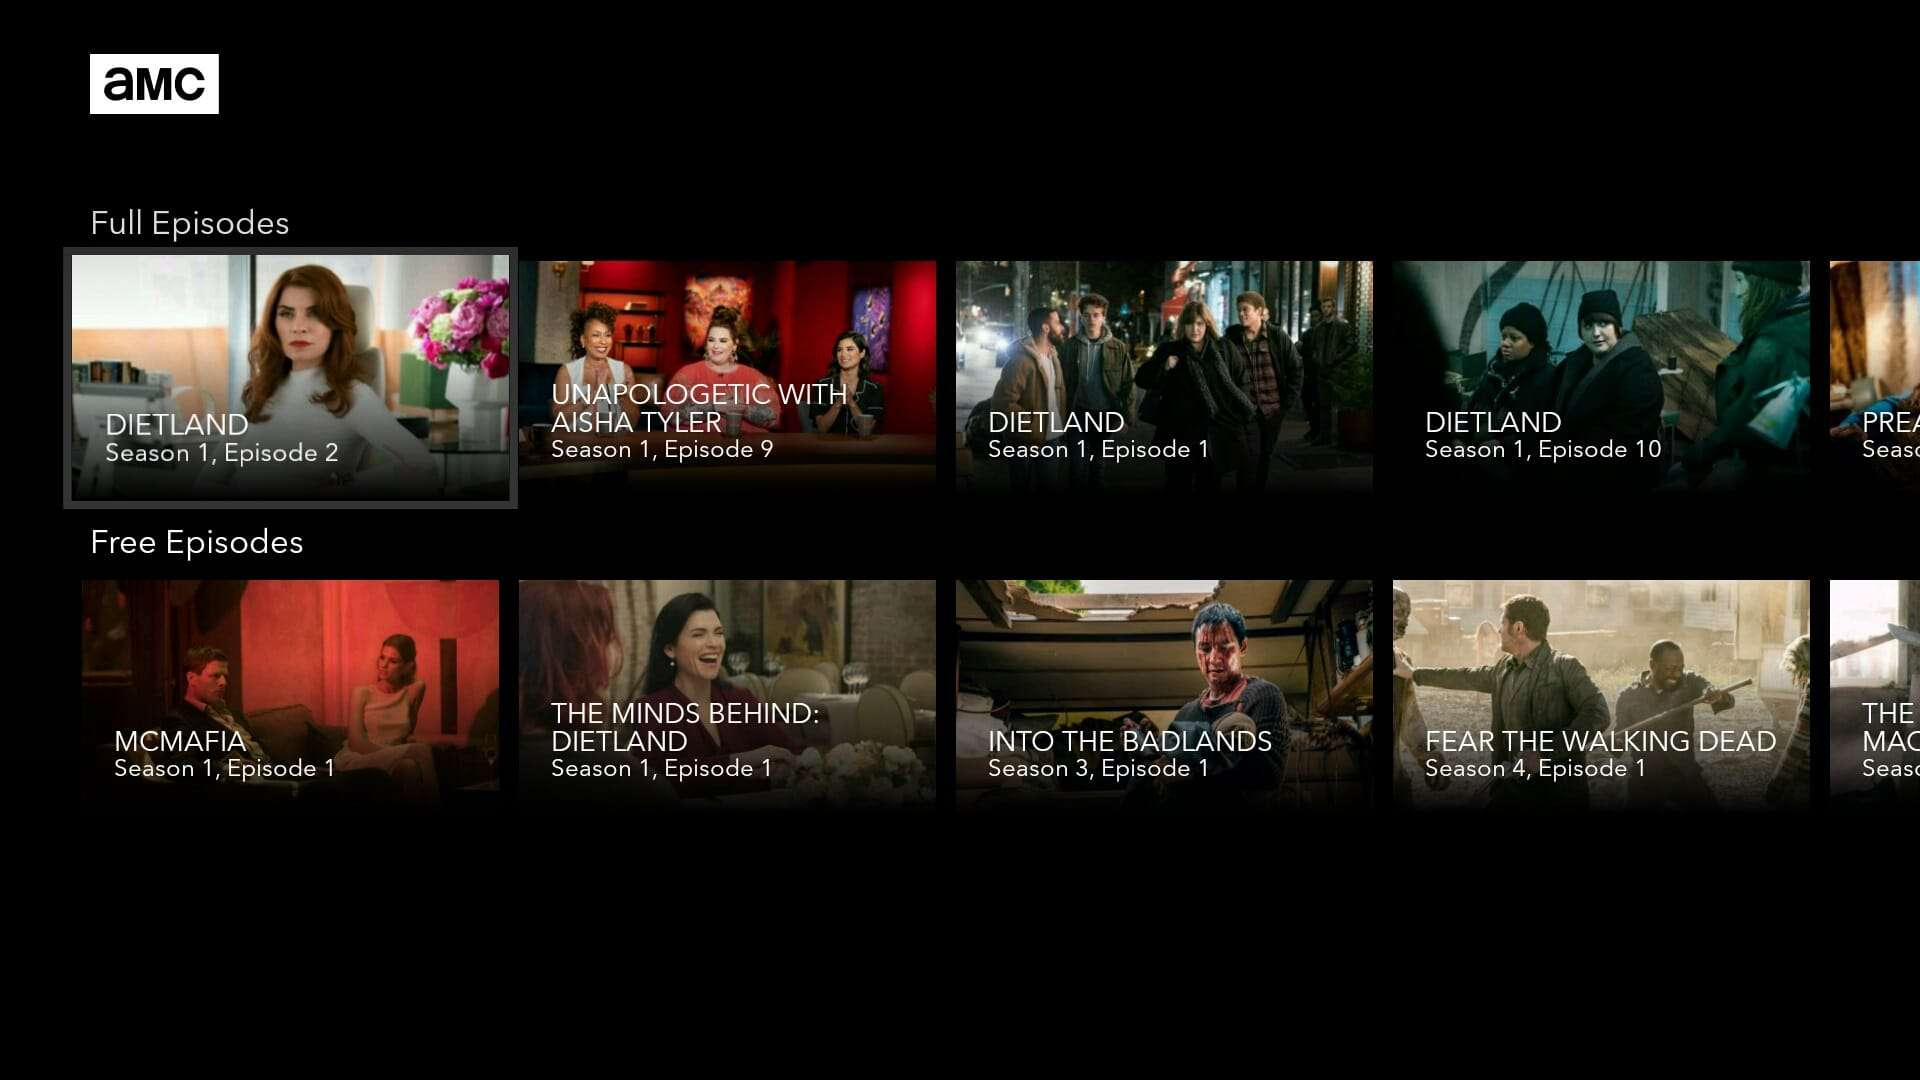 AMC Android TV App AH 02